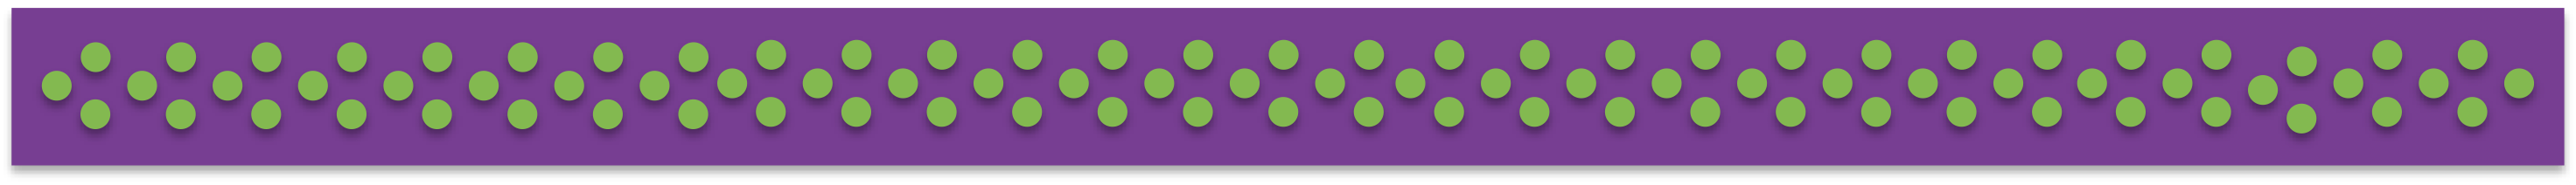 nd-polka-dot-banner.png